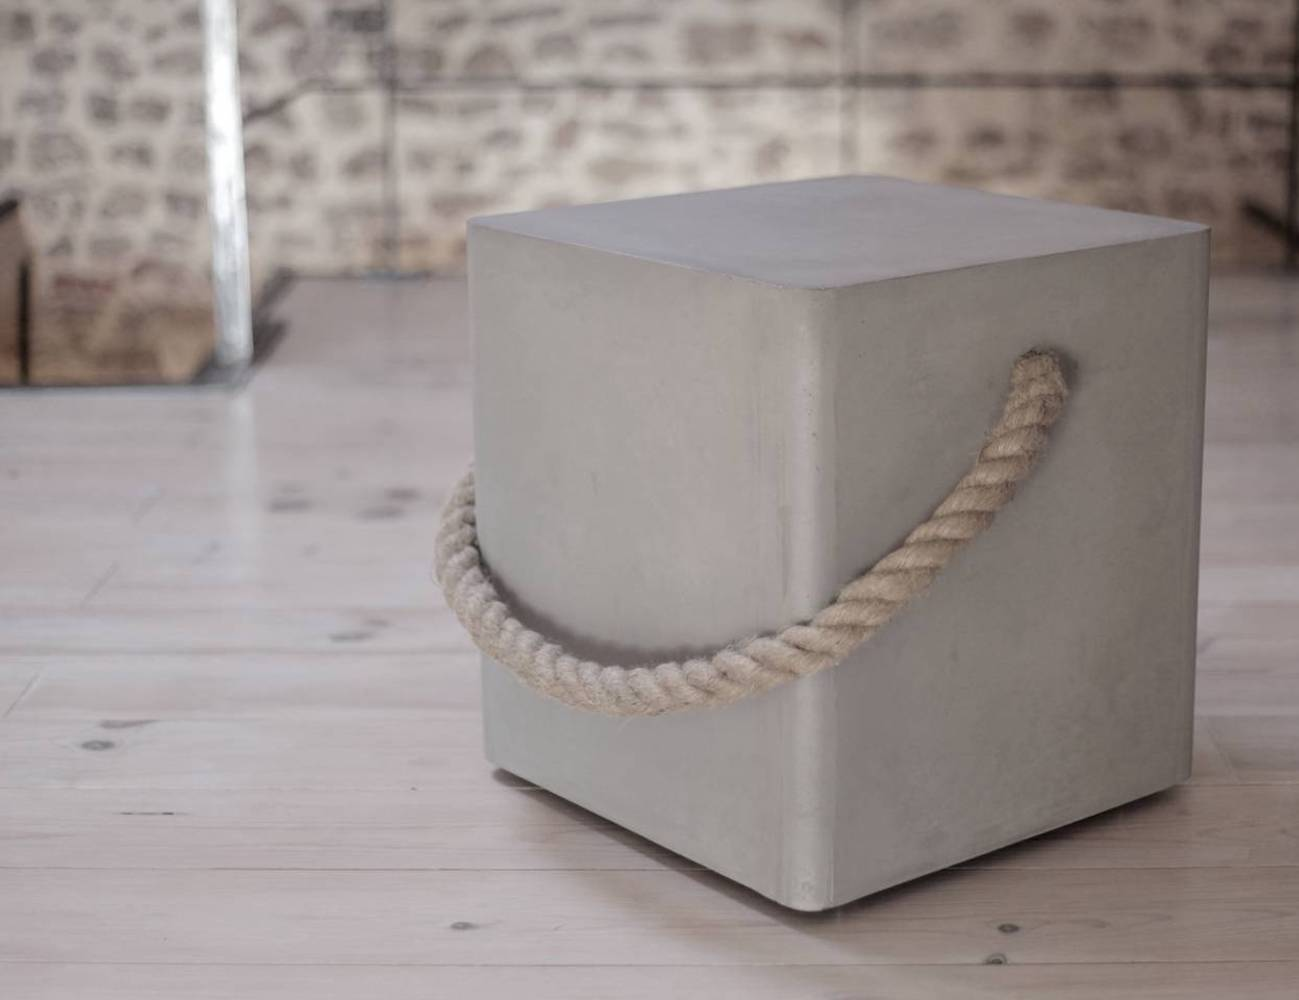 Concrete Soft Edge Modern Stool By Lyon Béton is classic and rustic